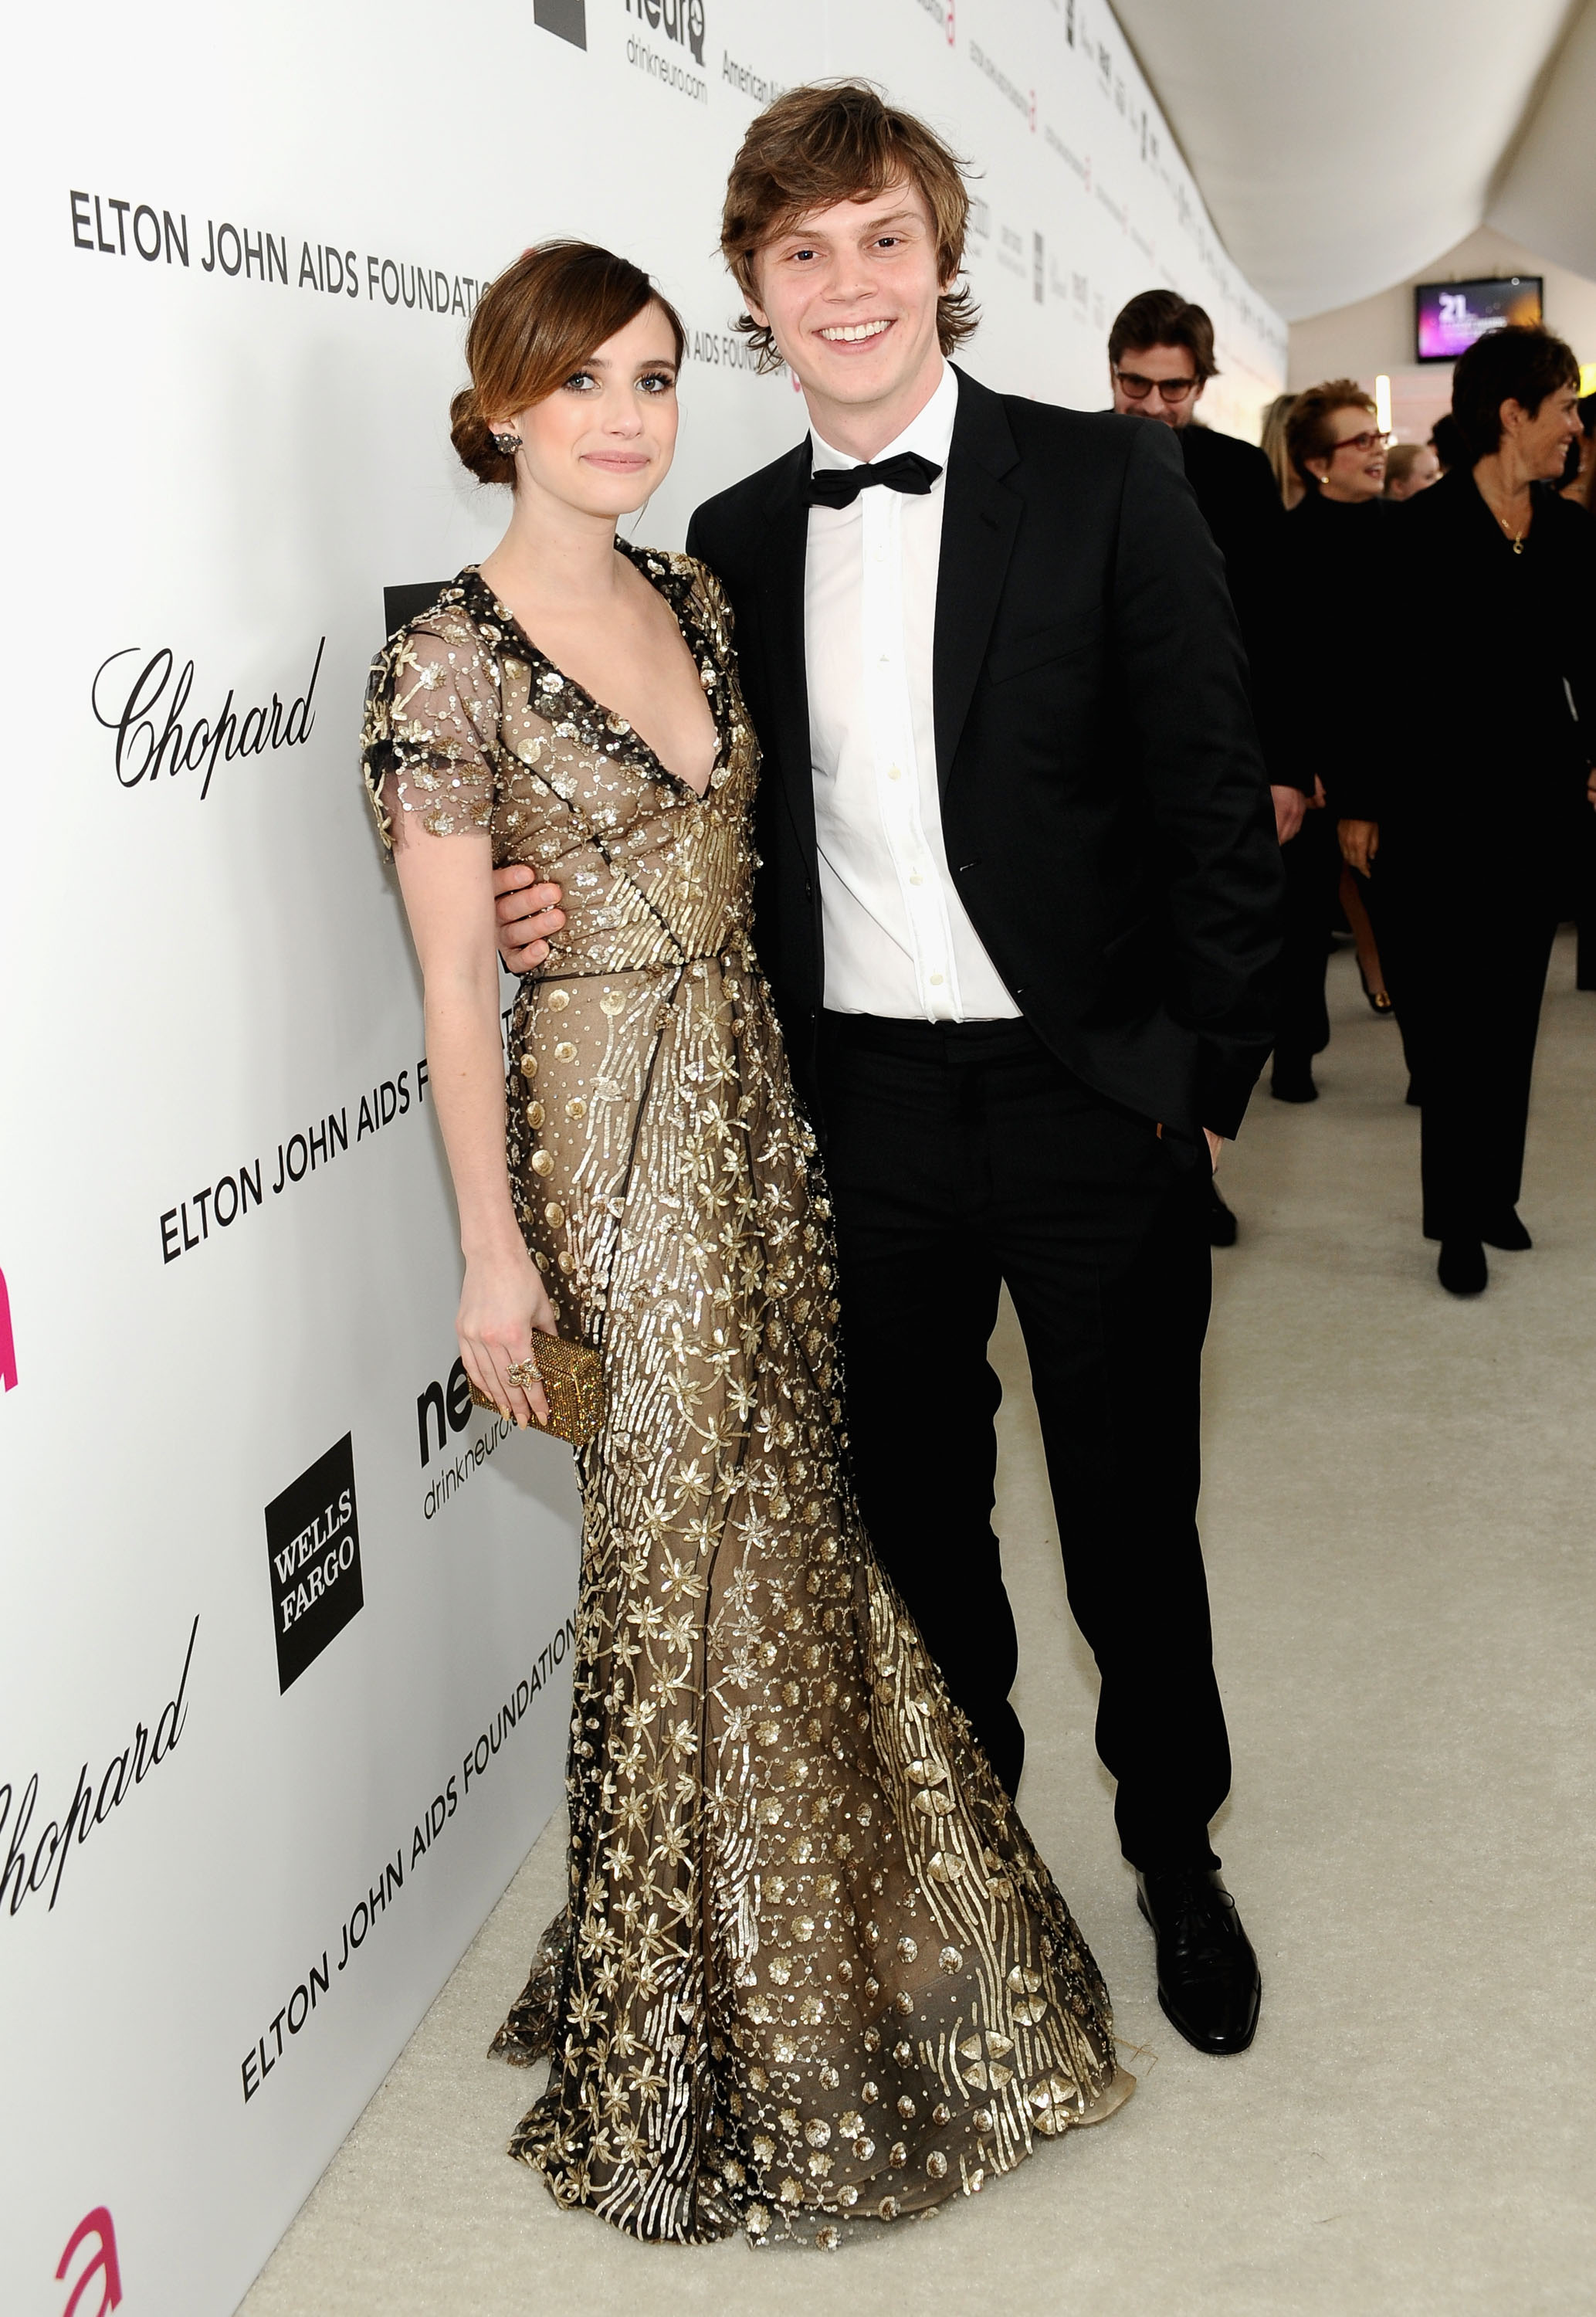 Emma Roberts arrived at Elton John's Oscar party with Evan Peters.